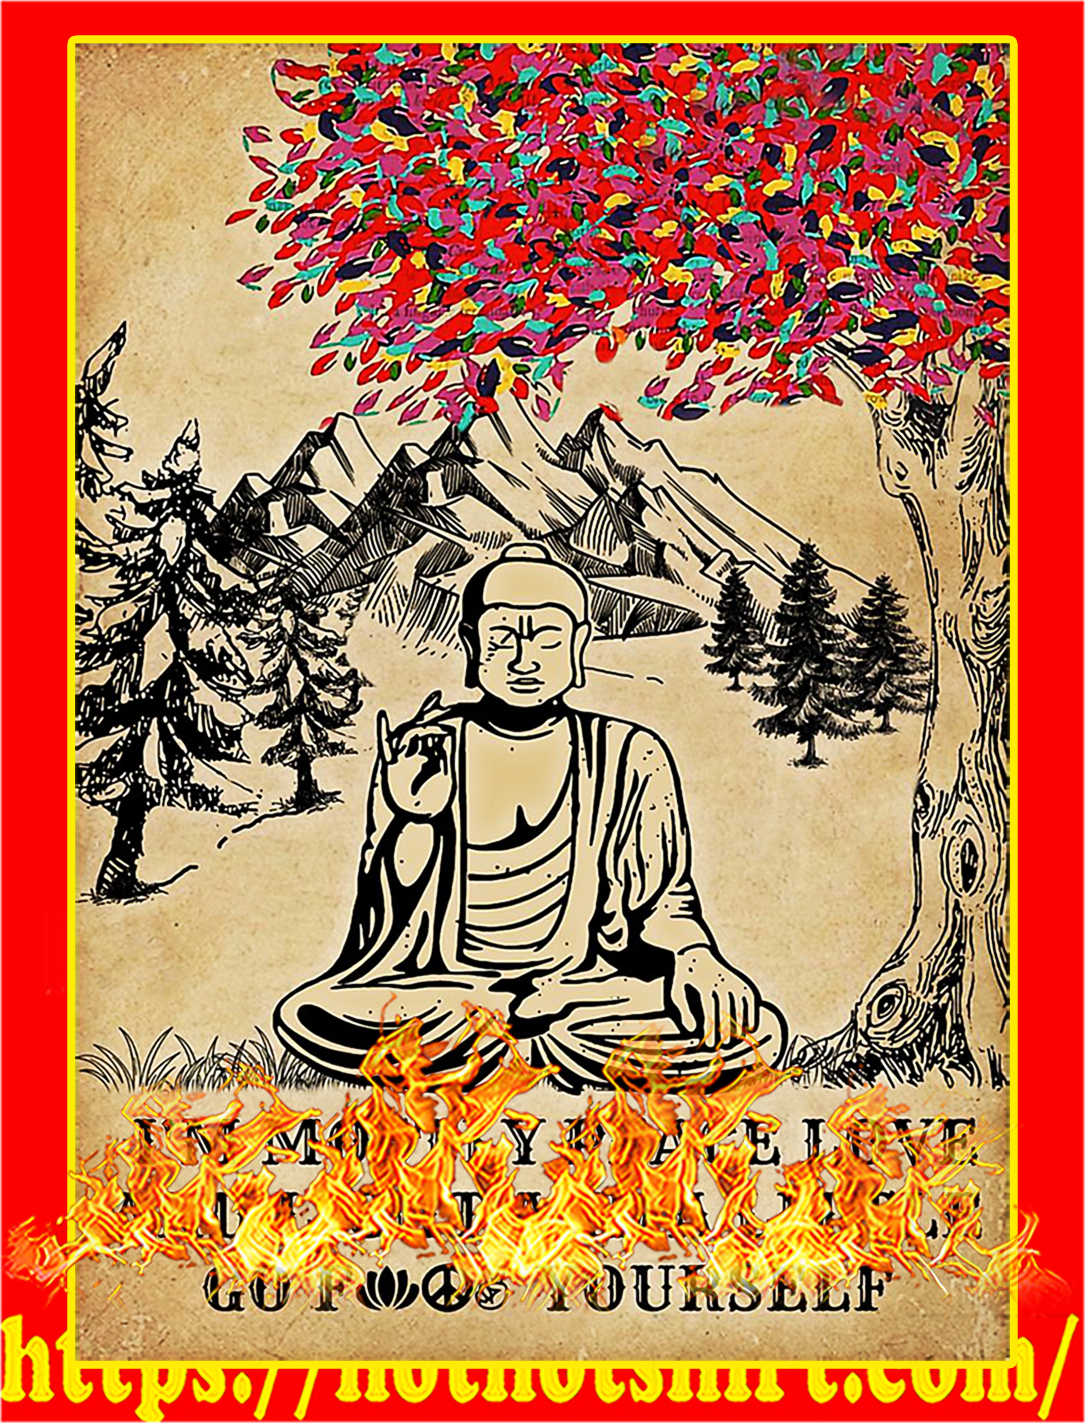 Buddha I'm mostly peace love and light poster - A1